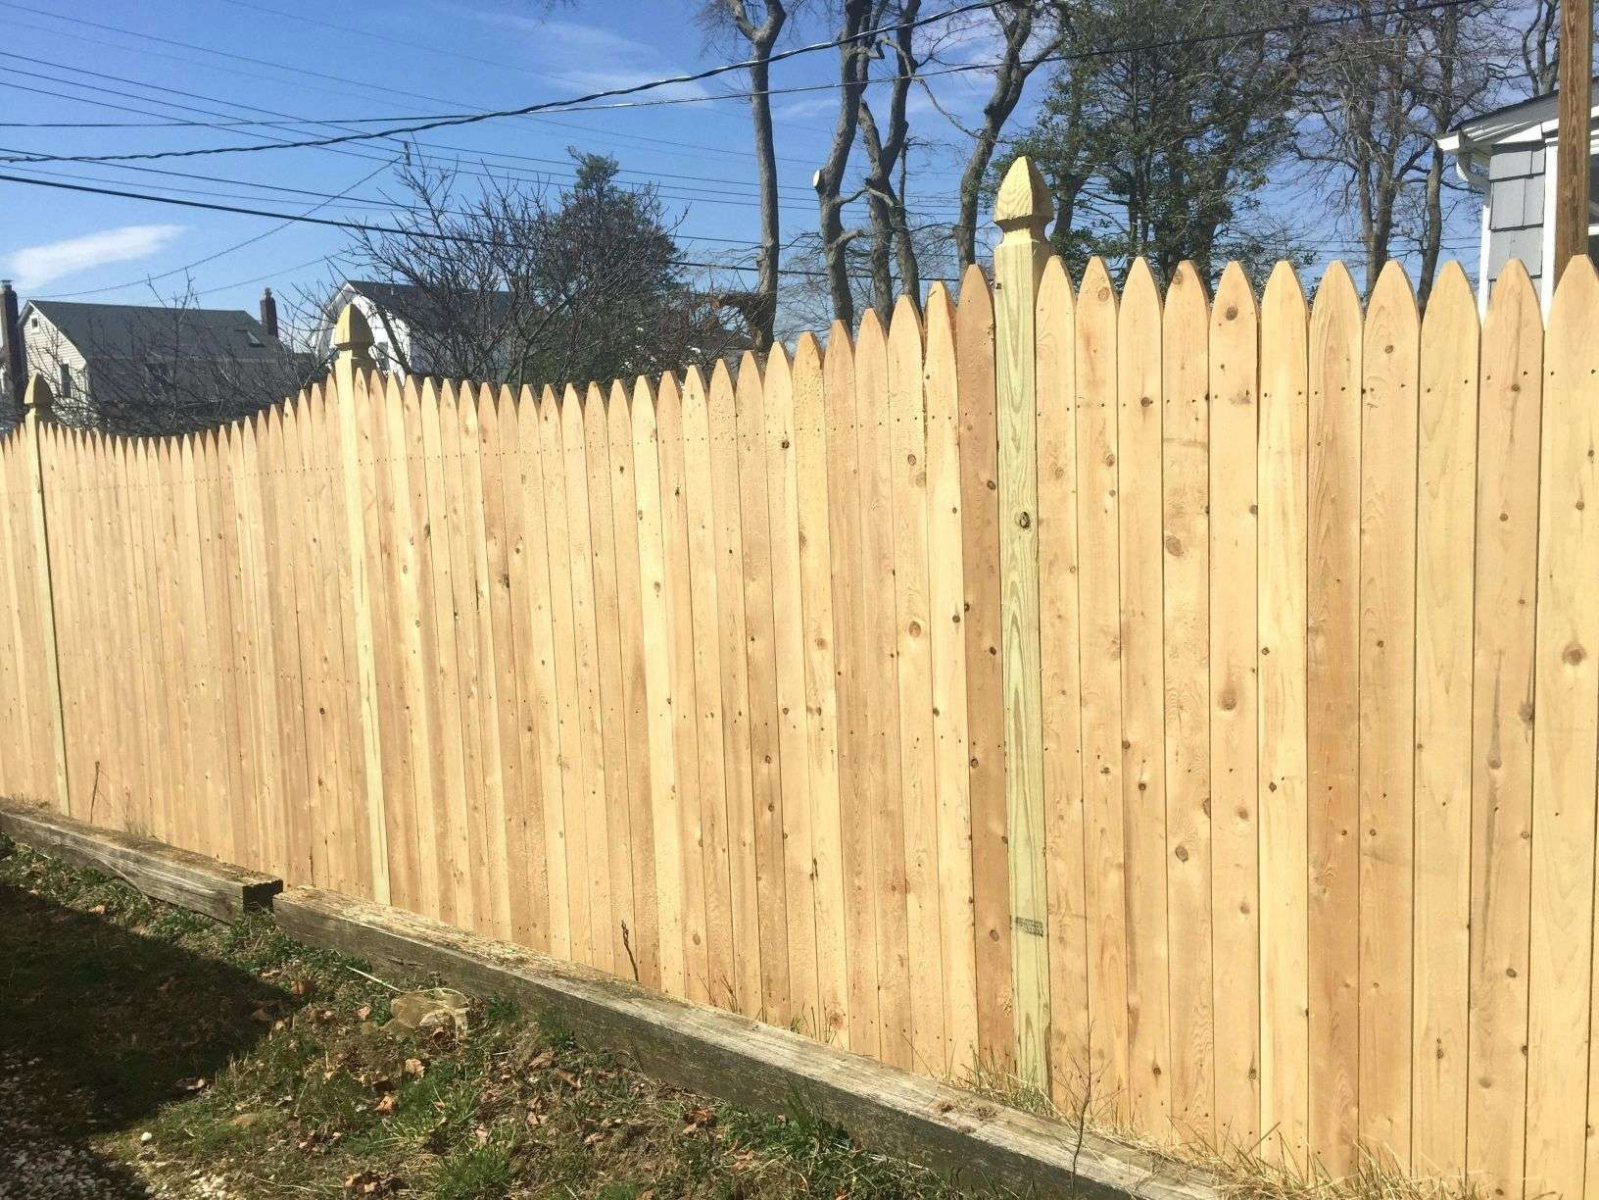 Wood Fence Cost Calculator Deliredutchatfr intended for 16 Smart Ideas How to Make Backyard Fence Cost Calculator